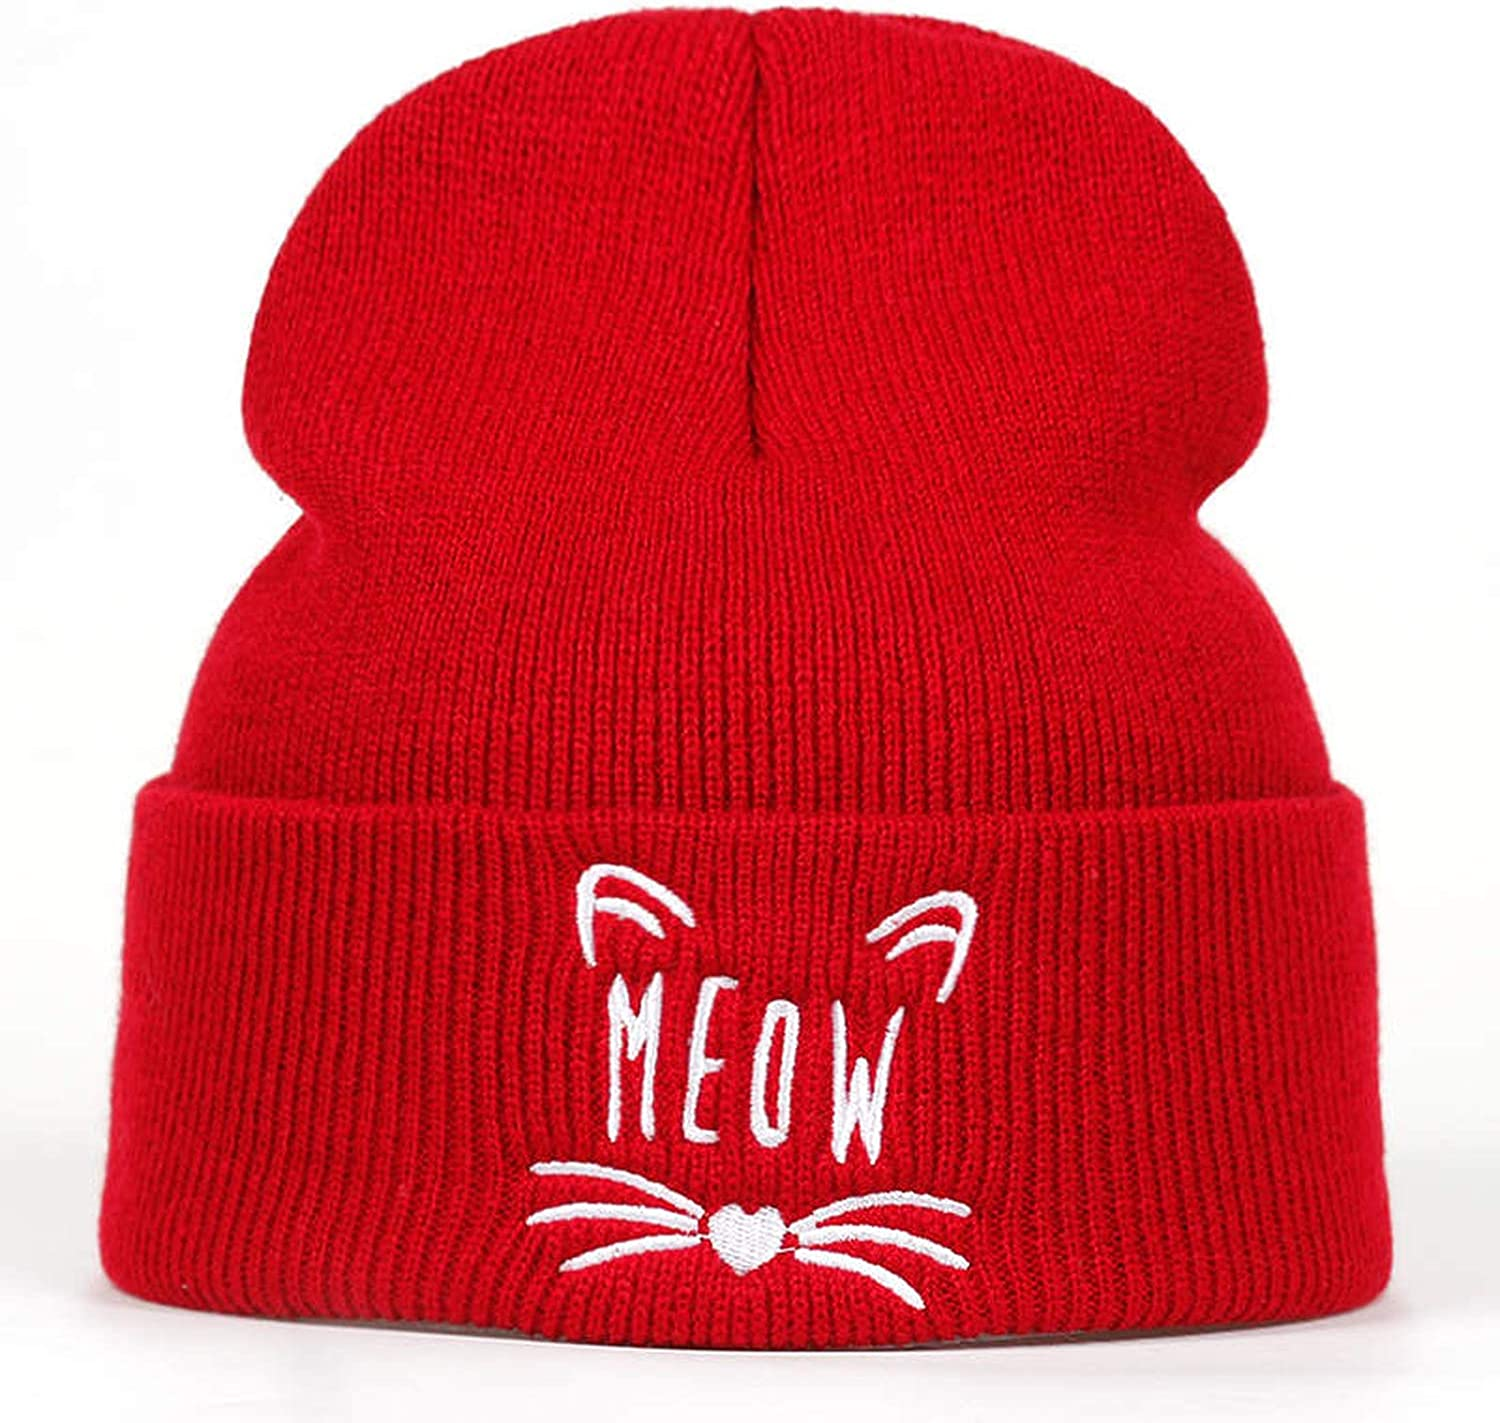 New Lady cat Embroidery Cotton Cap Fashion Cute 100/% Cotton Skullies hat Hip hop Girl Winter Warm hat